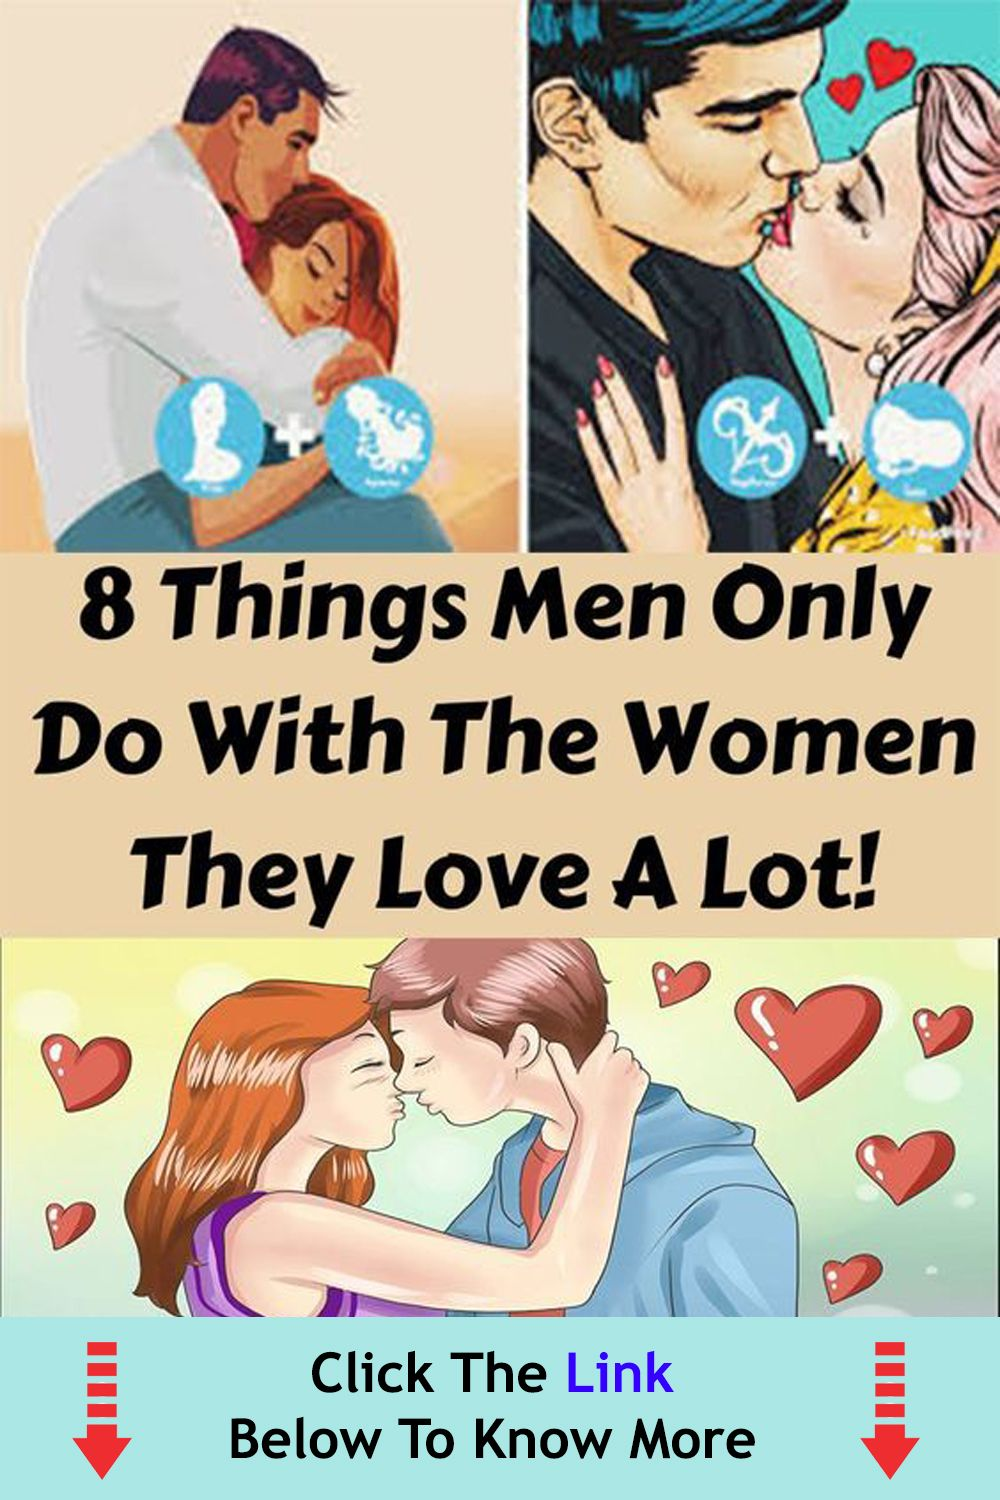 8 Things Men Only do with the women they love a lo